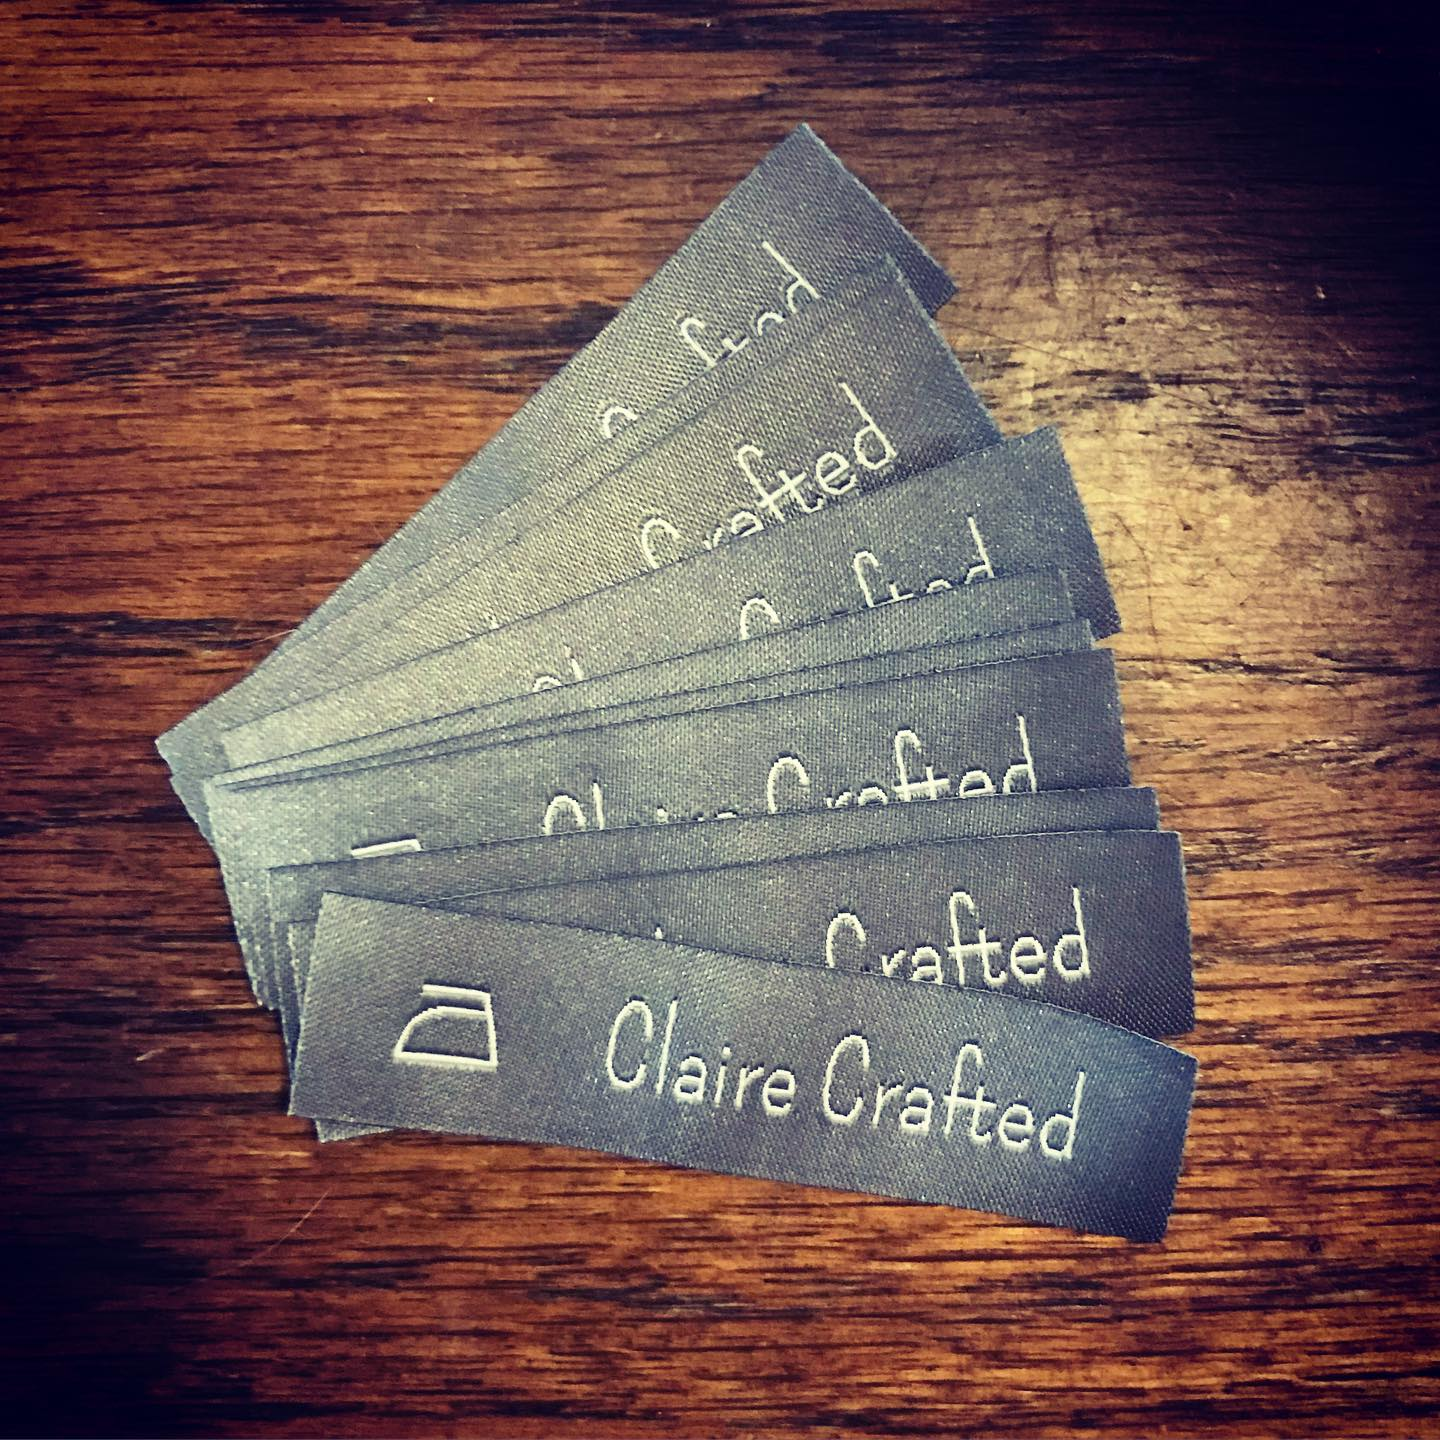 af30139acd37 Just came home to my new Claire Crafted labels from dutchlabelshop! Can't  wait